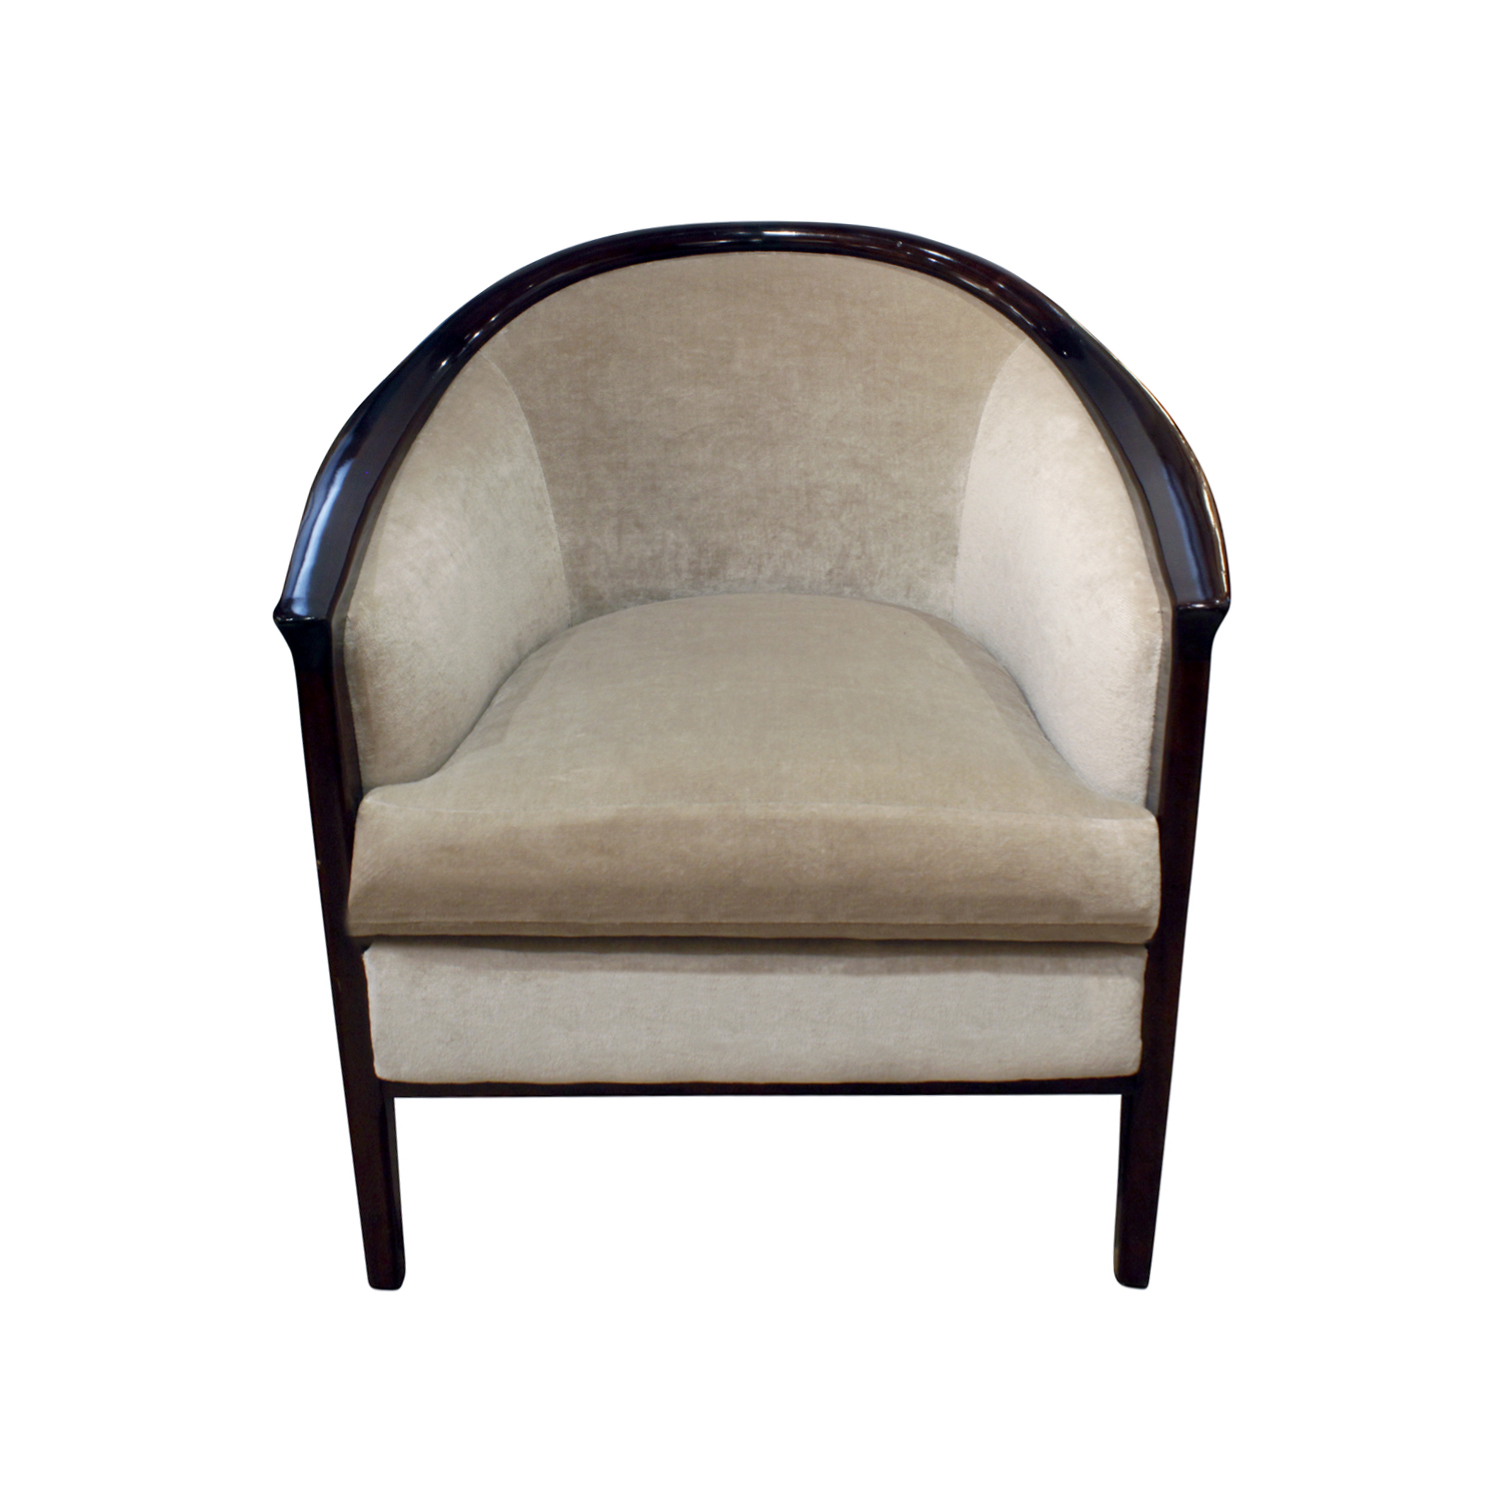 French 150 30s chairs mahg trim loungechairs188 sngl.jpg